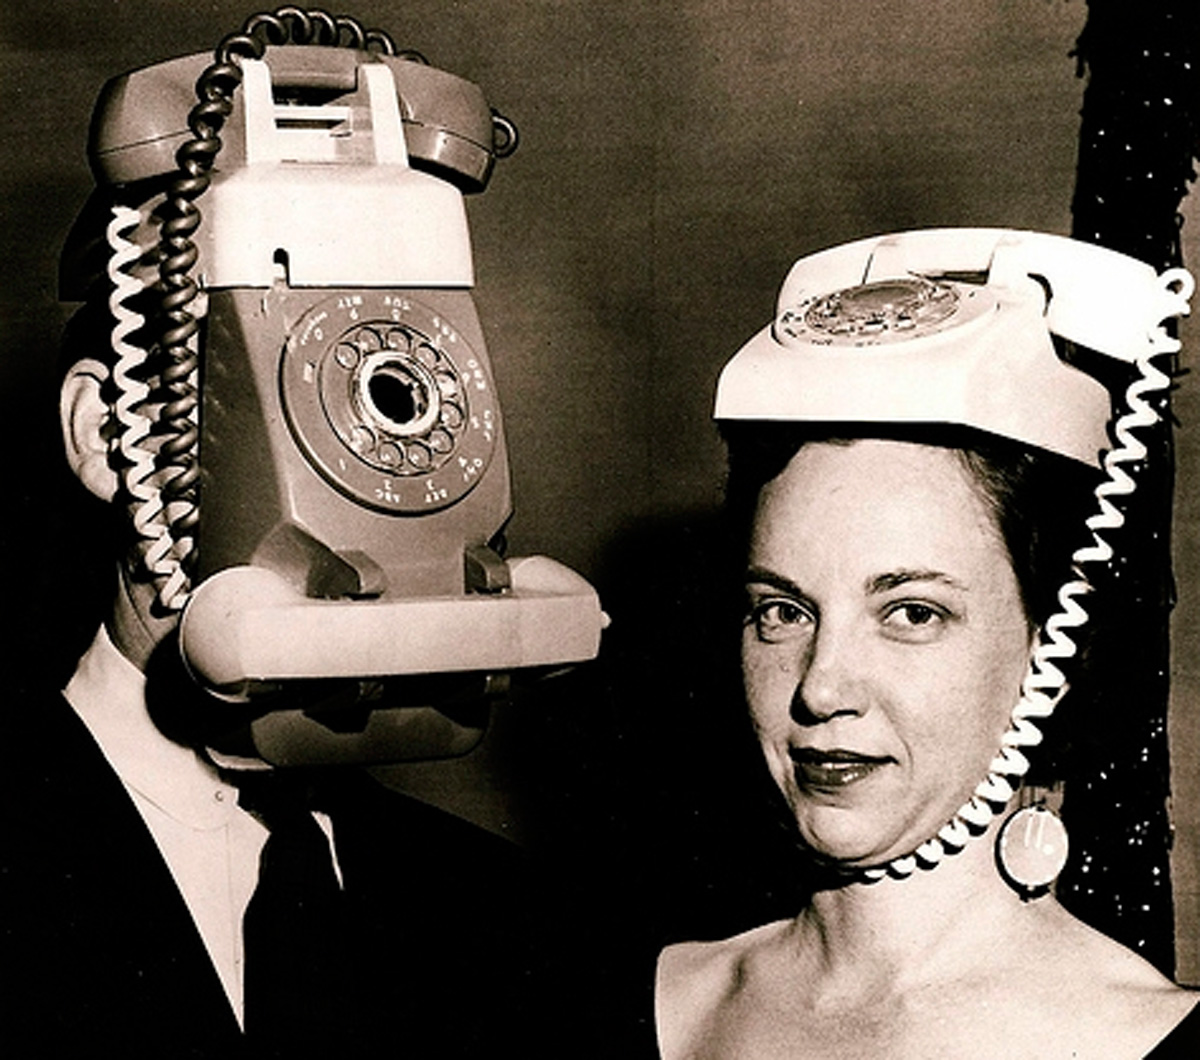 vintage-phone-costume-johnnycupcakes